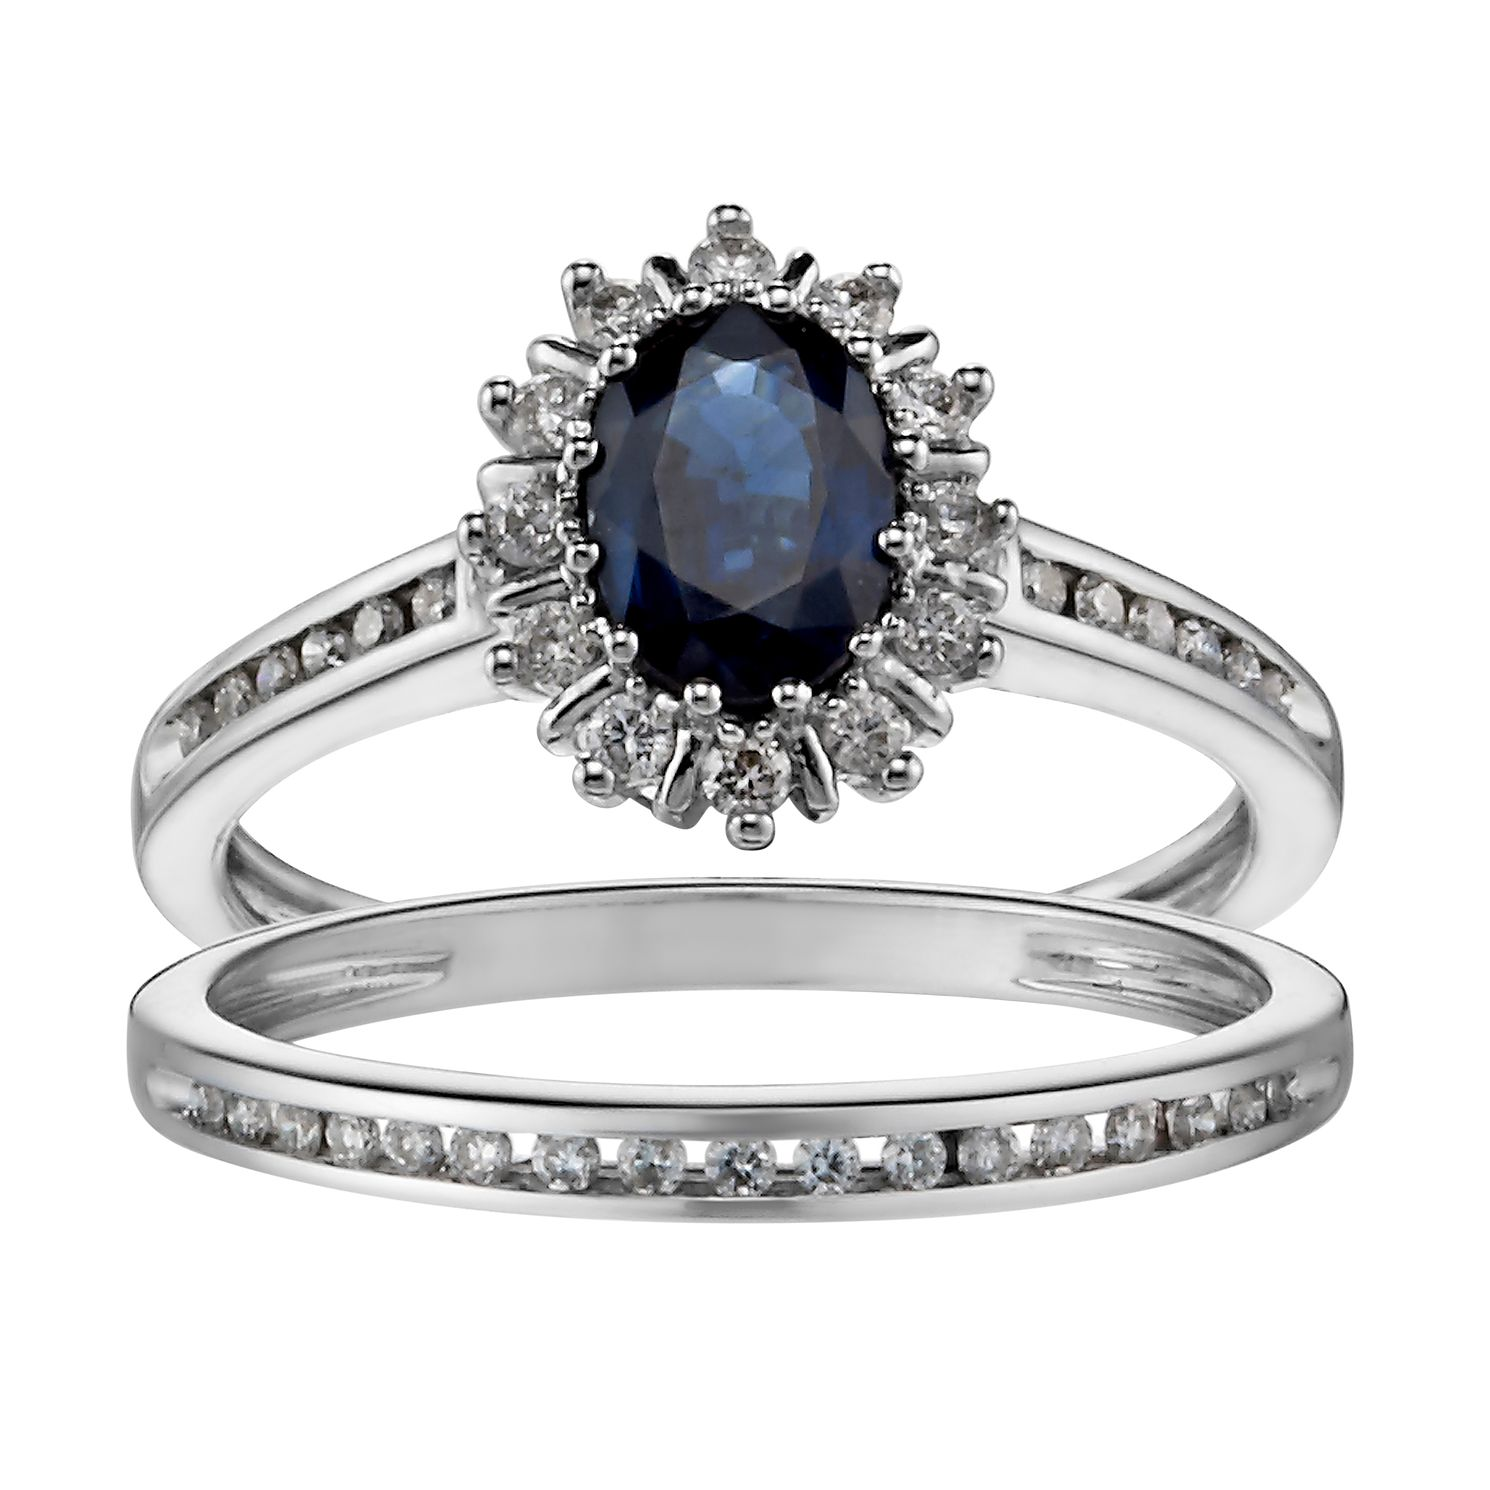 Sapphire Jewellery Engagement Rings & Necklaces Ernest Jones